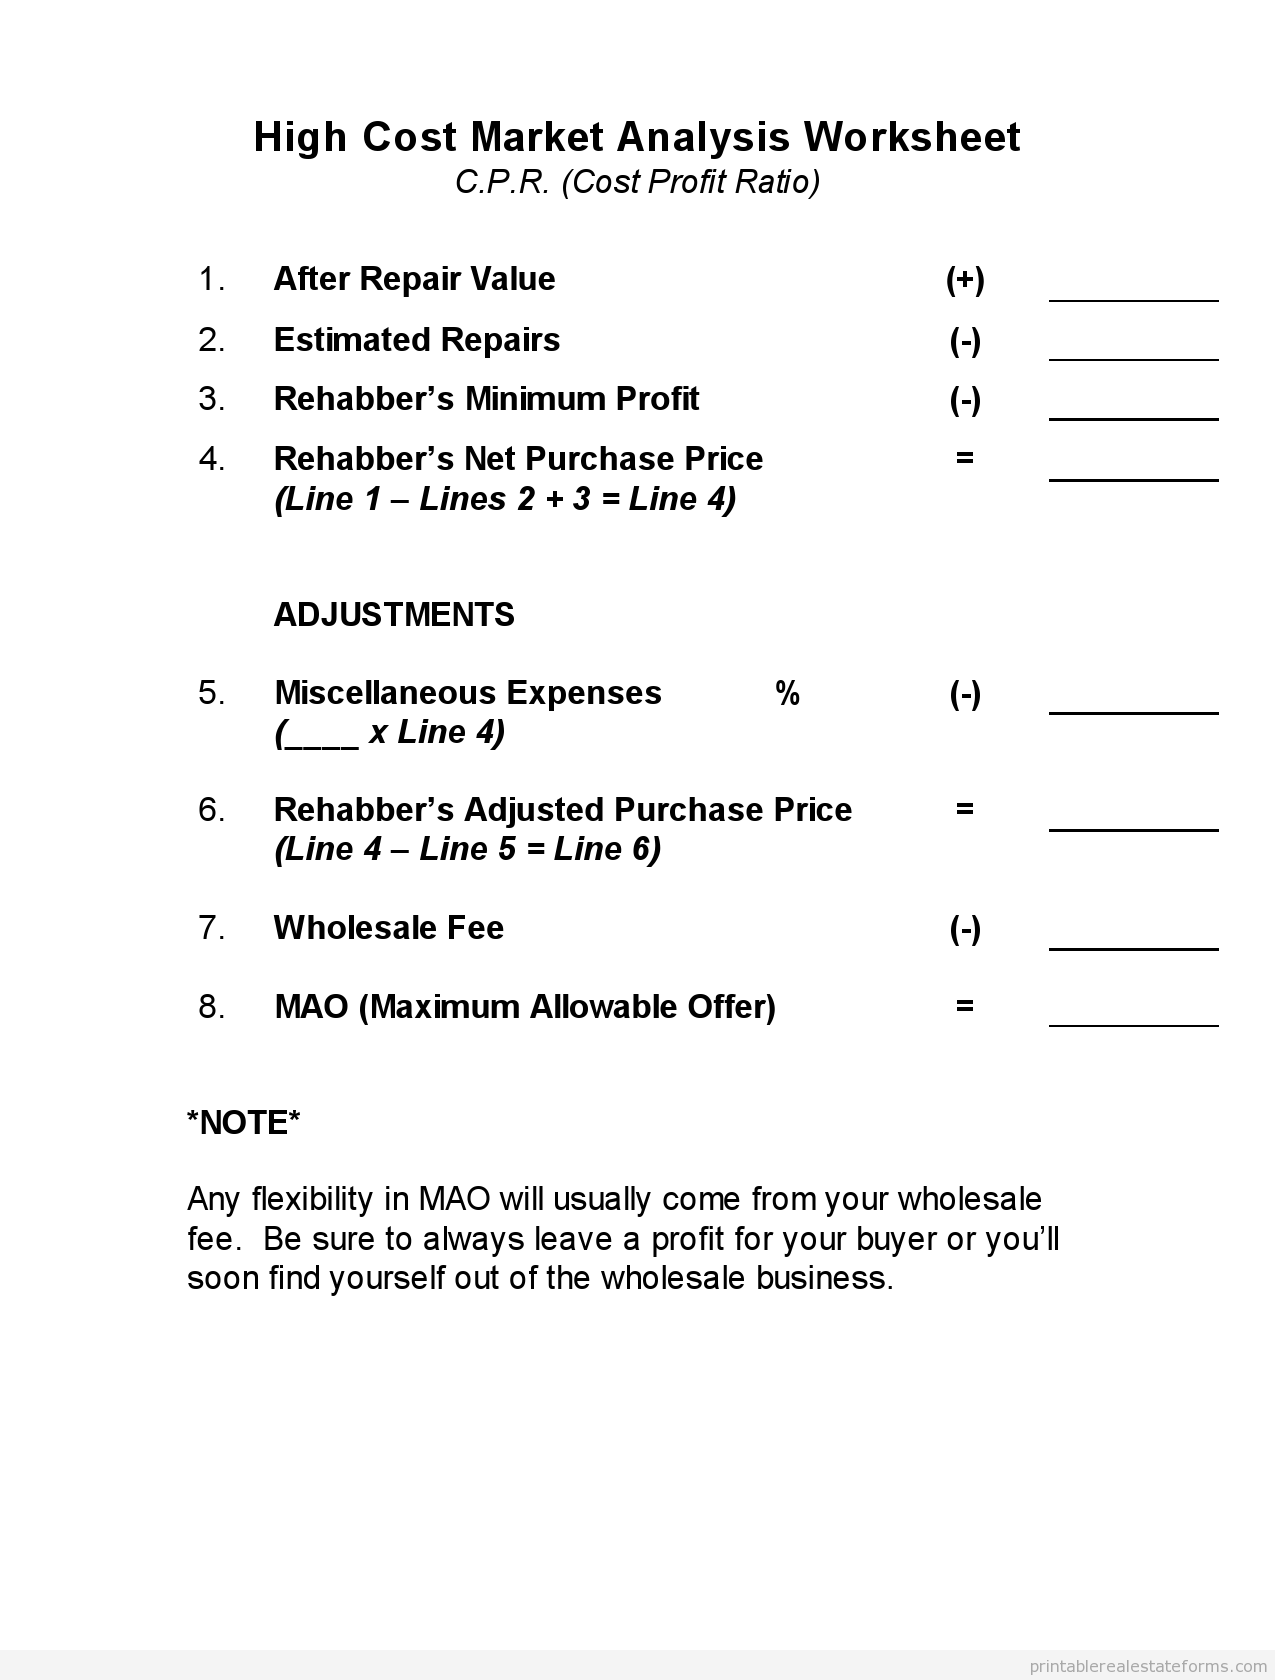 Free Printable High Cost Marketysis Worksheet